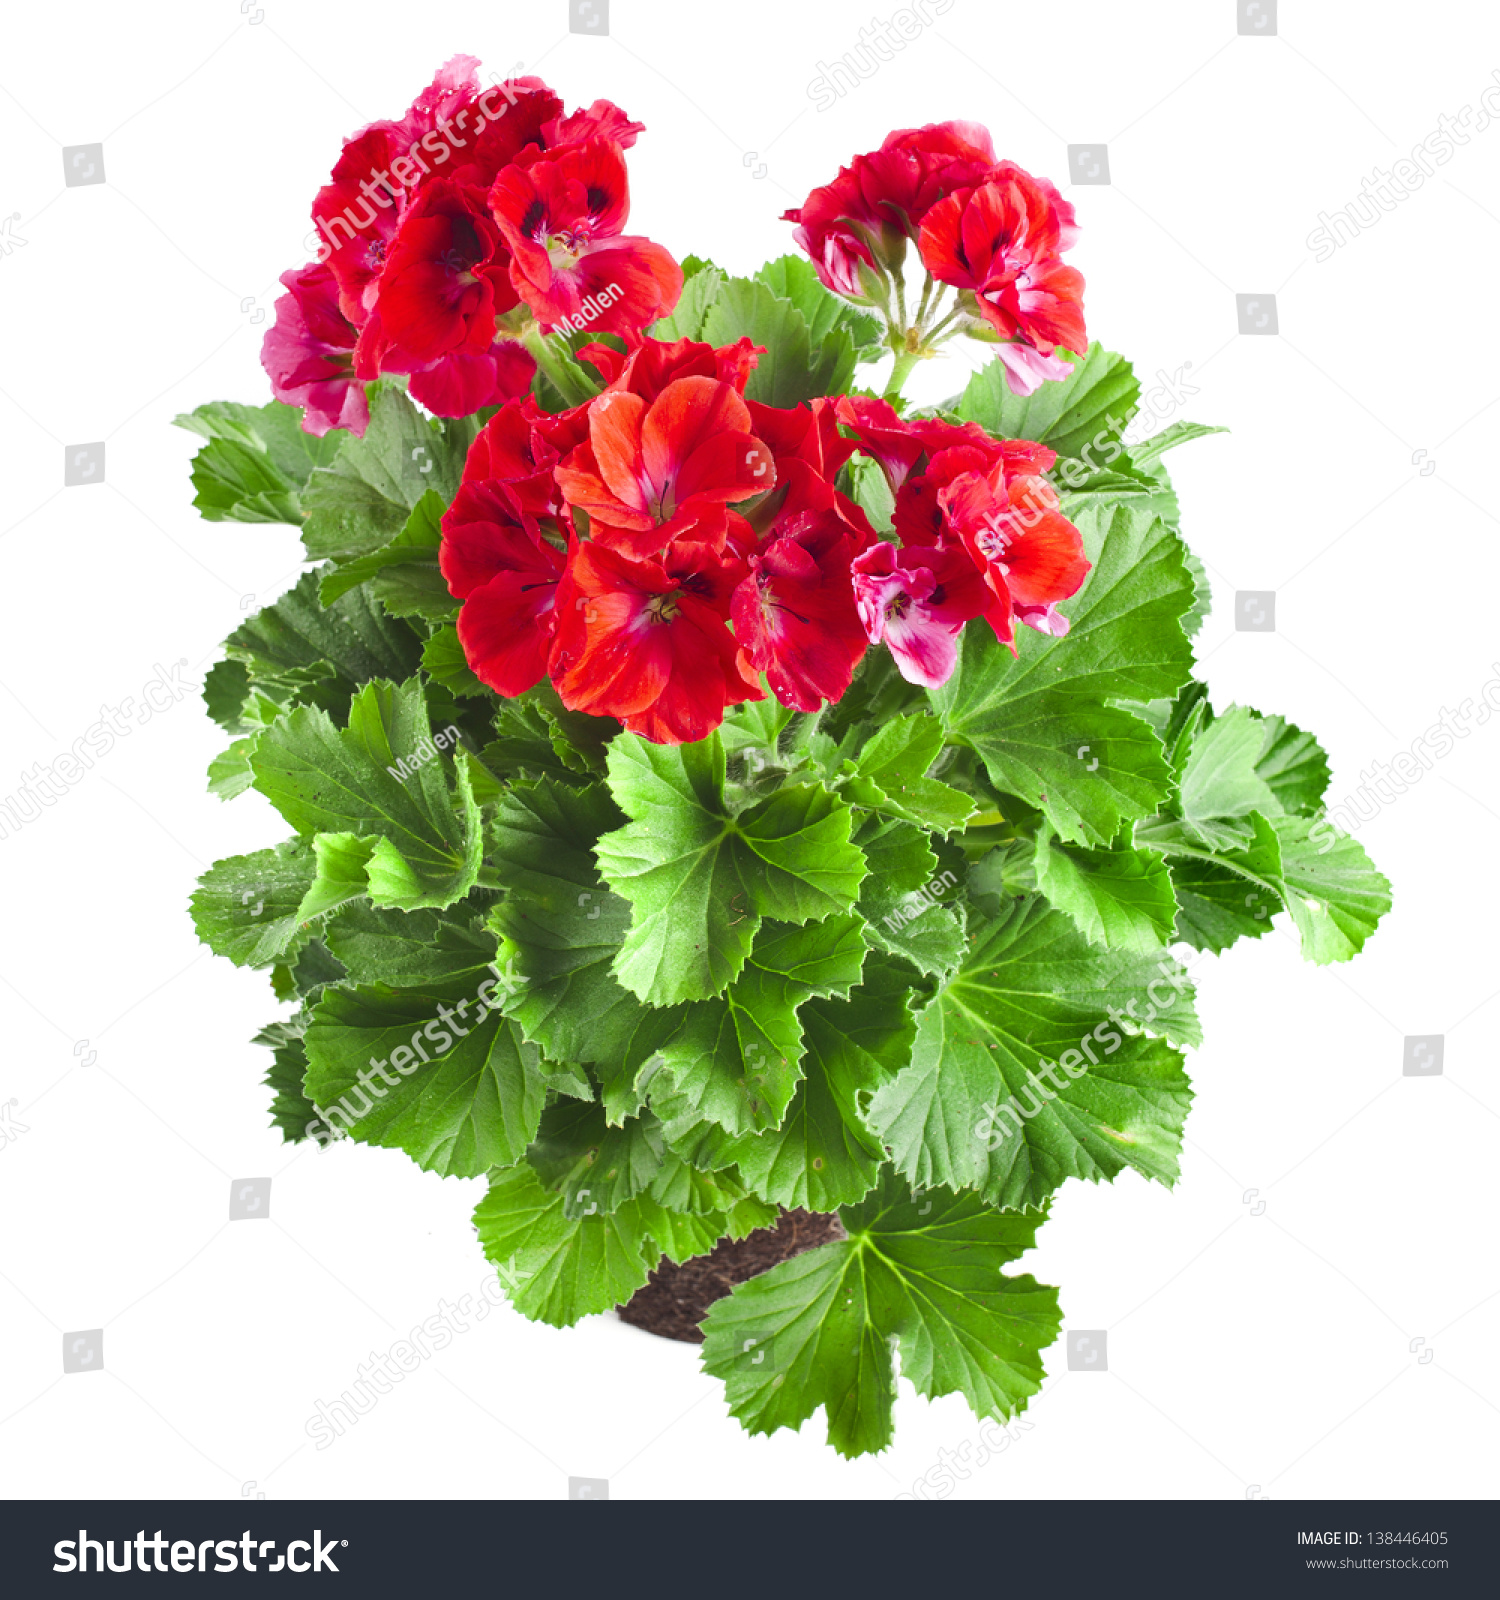 Red Geranium Flower Close Up Isolated On White Background ...